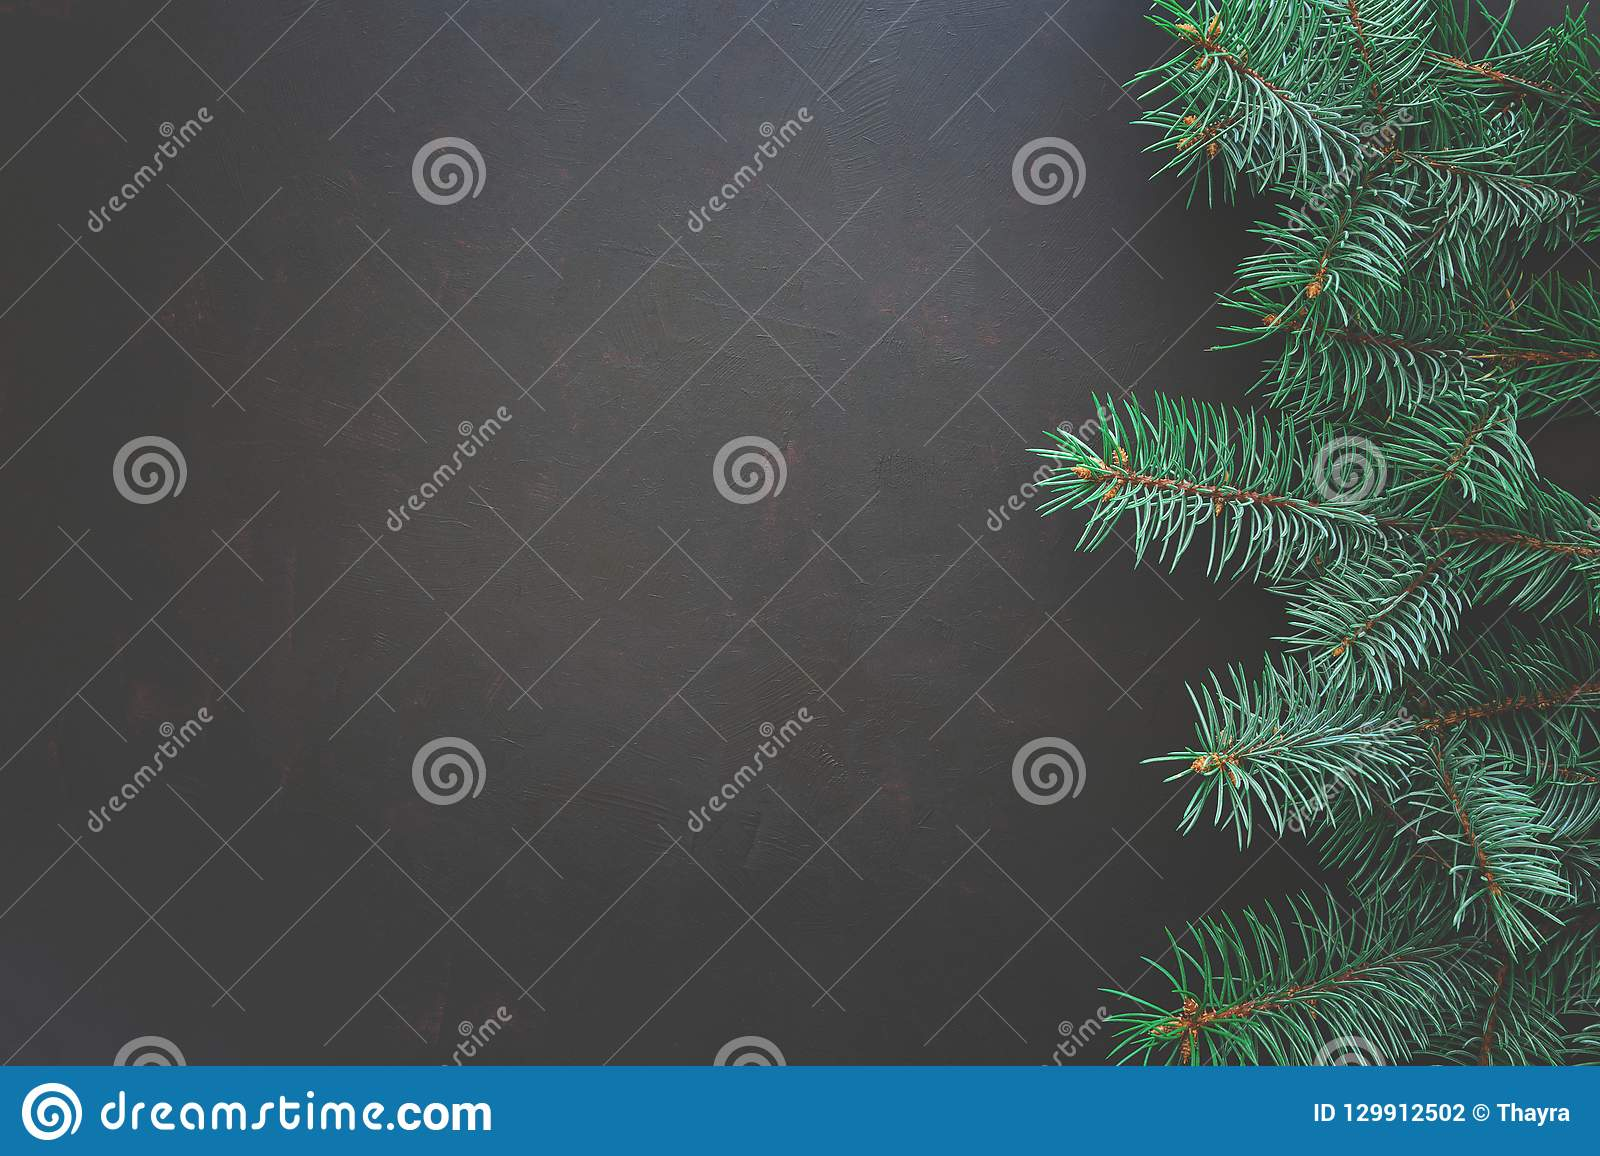 Christmas Border. Fir tree branches on dark wooden background. Top view. Copy space.